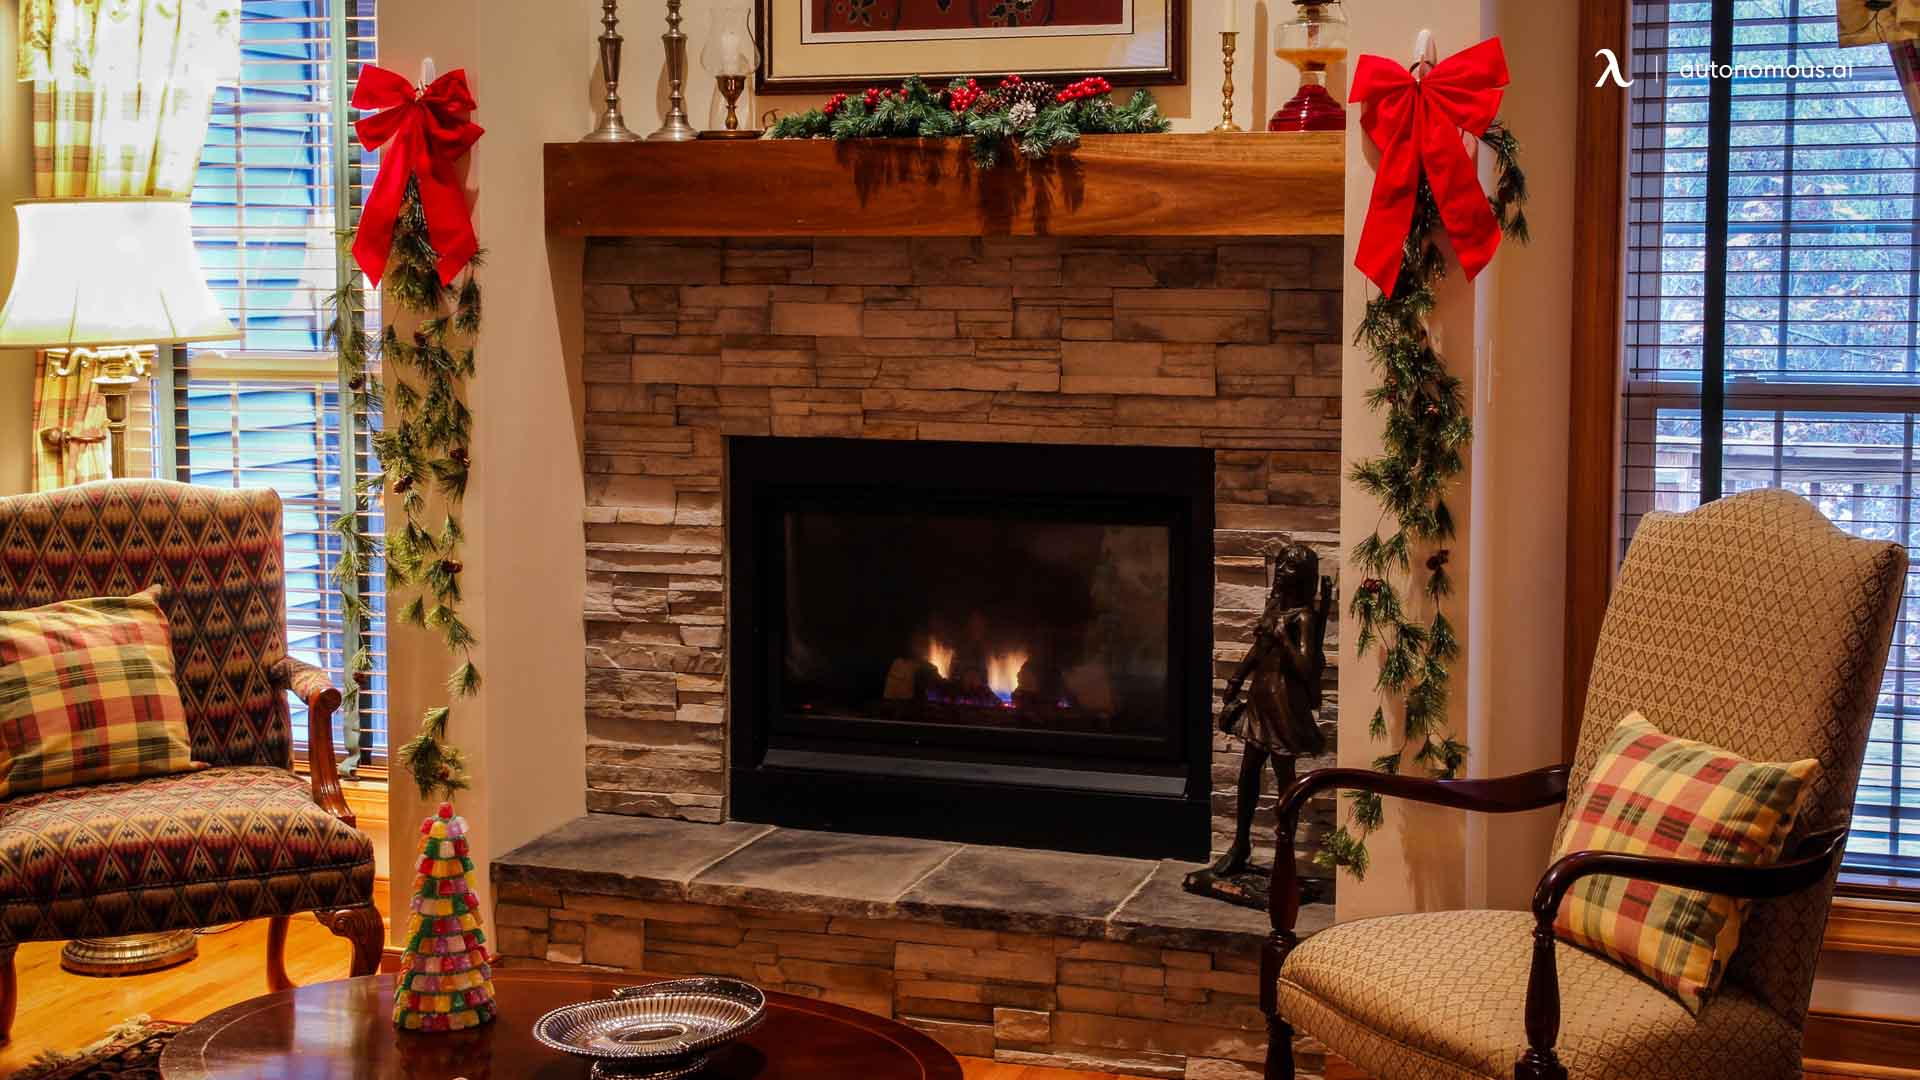 Incorporate Warm and Relaxing Elements into Your Home